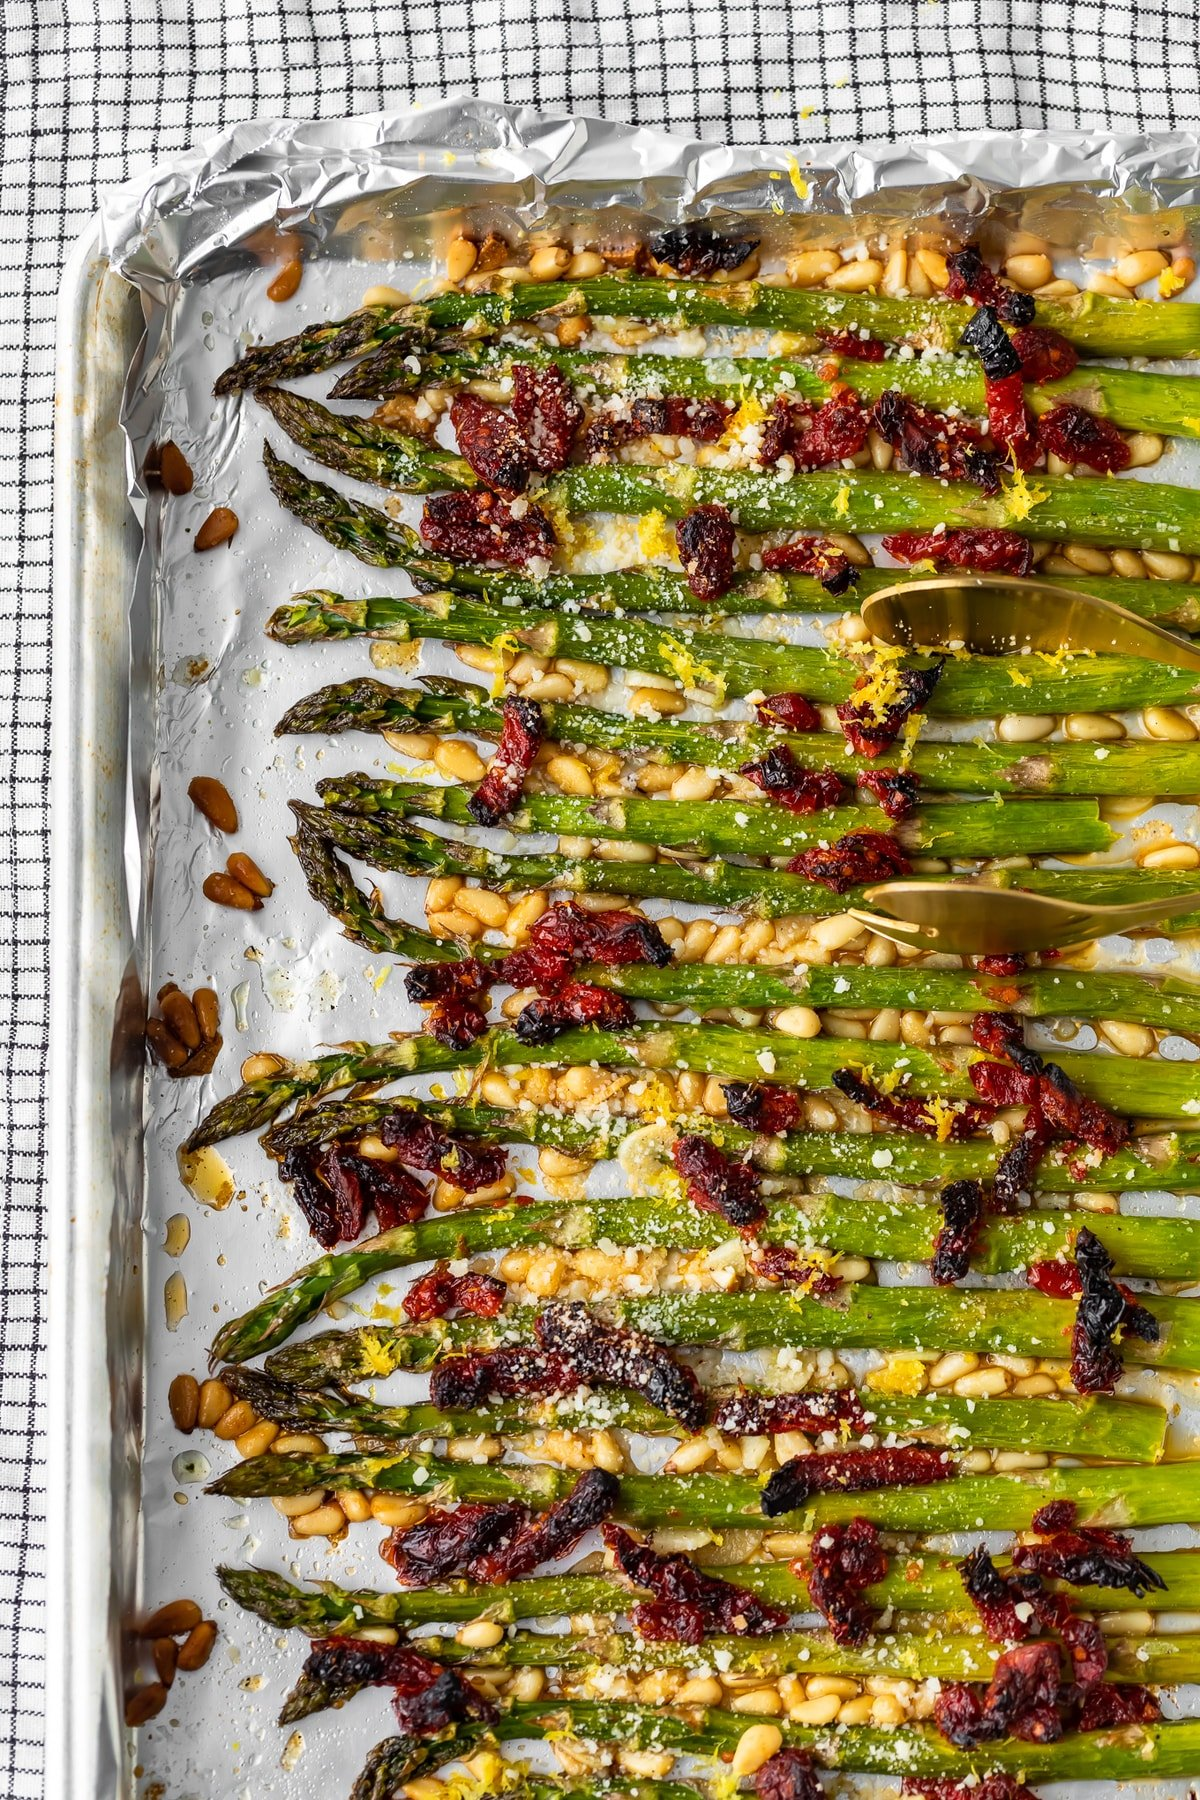 asparagus lined up on a baking sheet